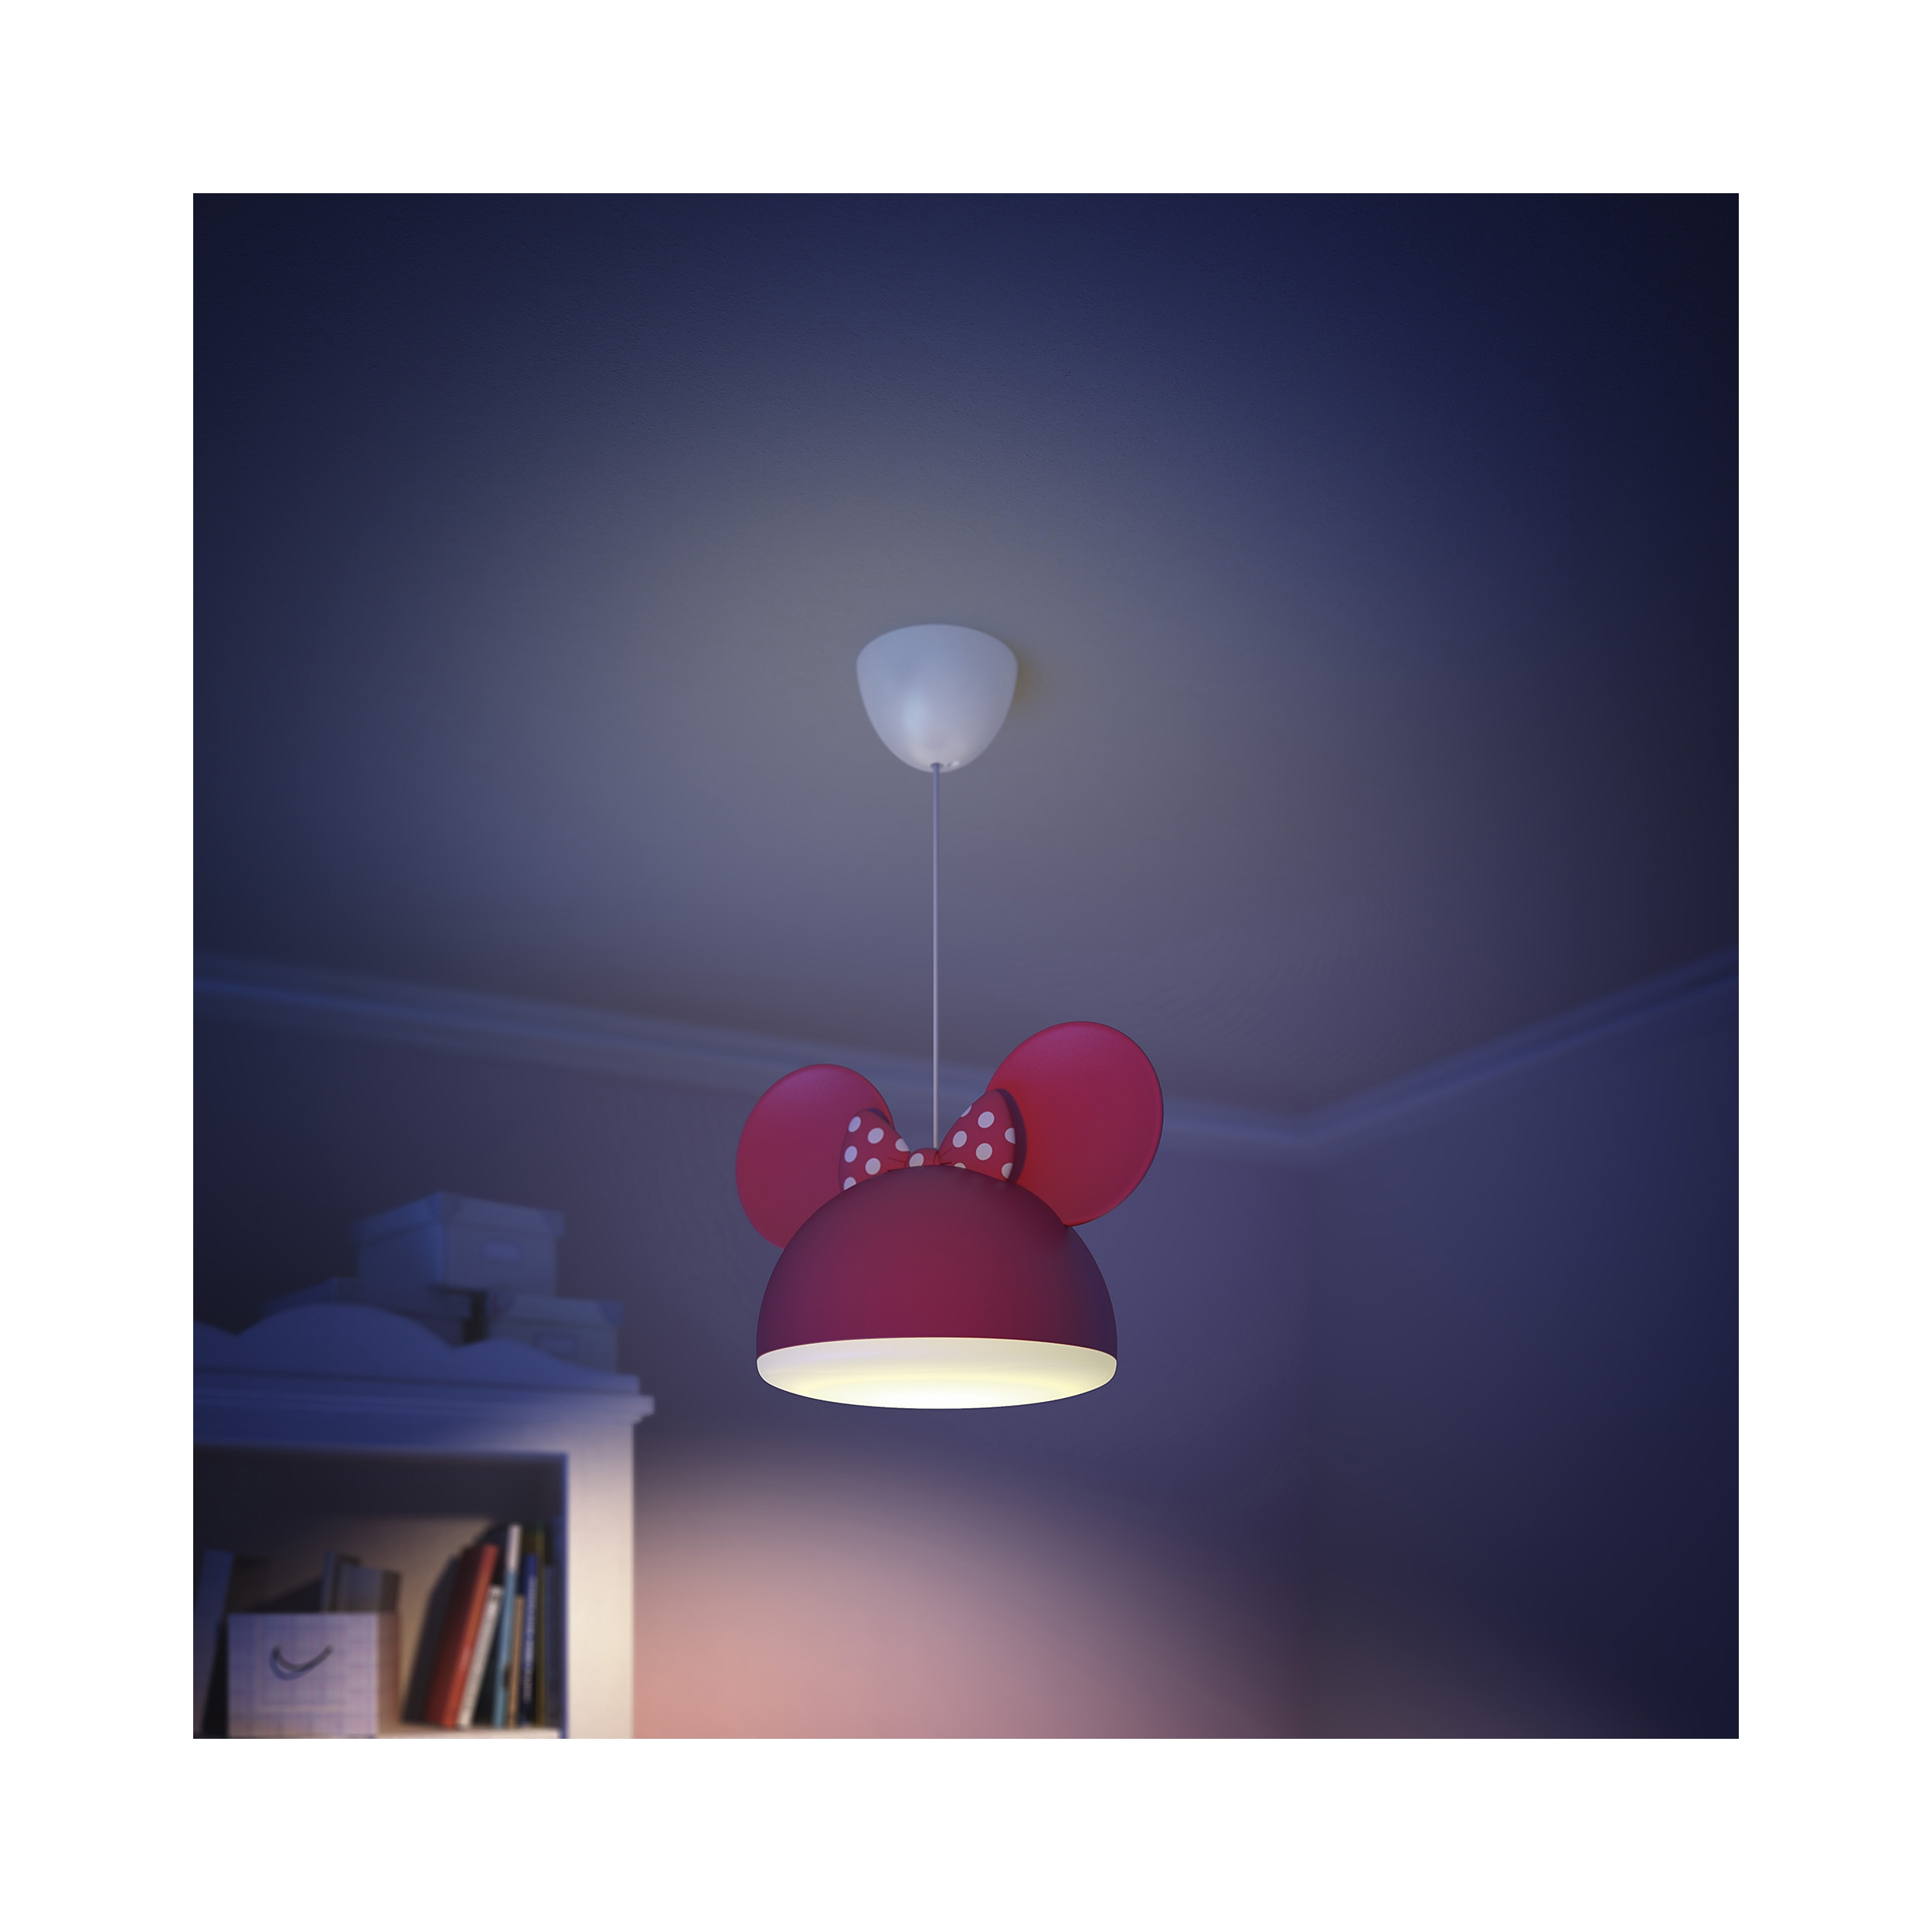 philips lampe kinderzimmer disney pendelleuchte minnie mouse licht 717583116 ebay. Black Bedroom Furniture Sets. Home Design Ideas